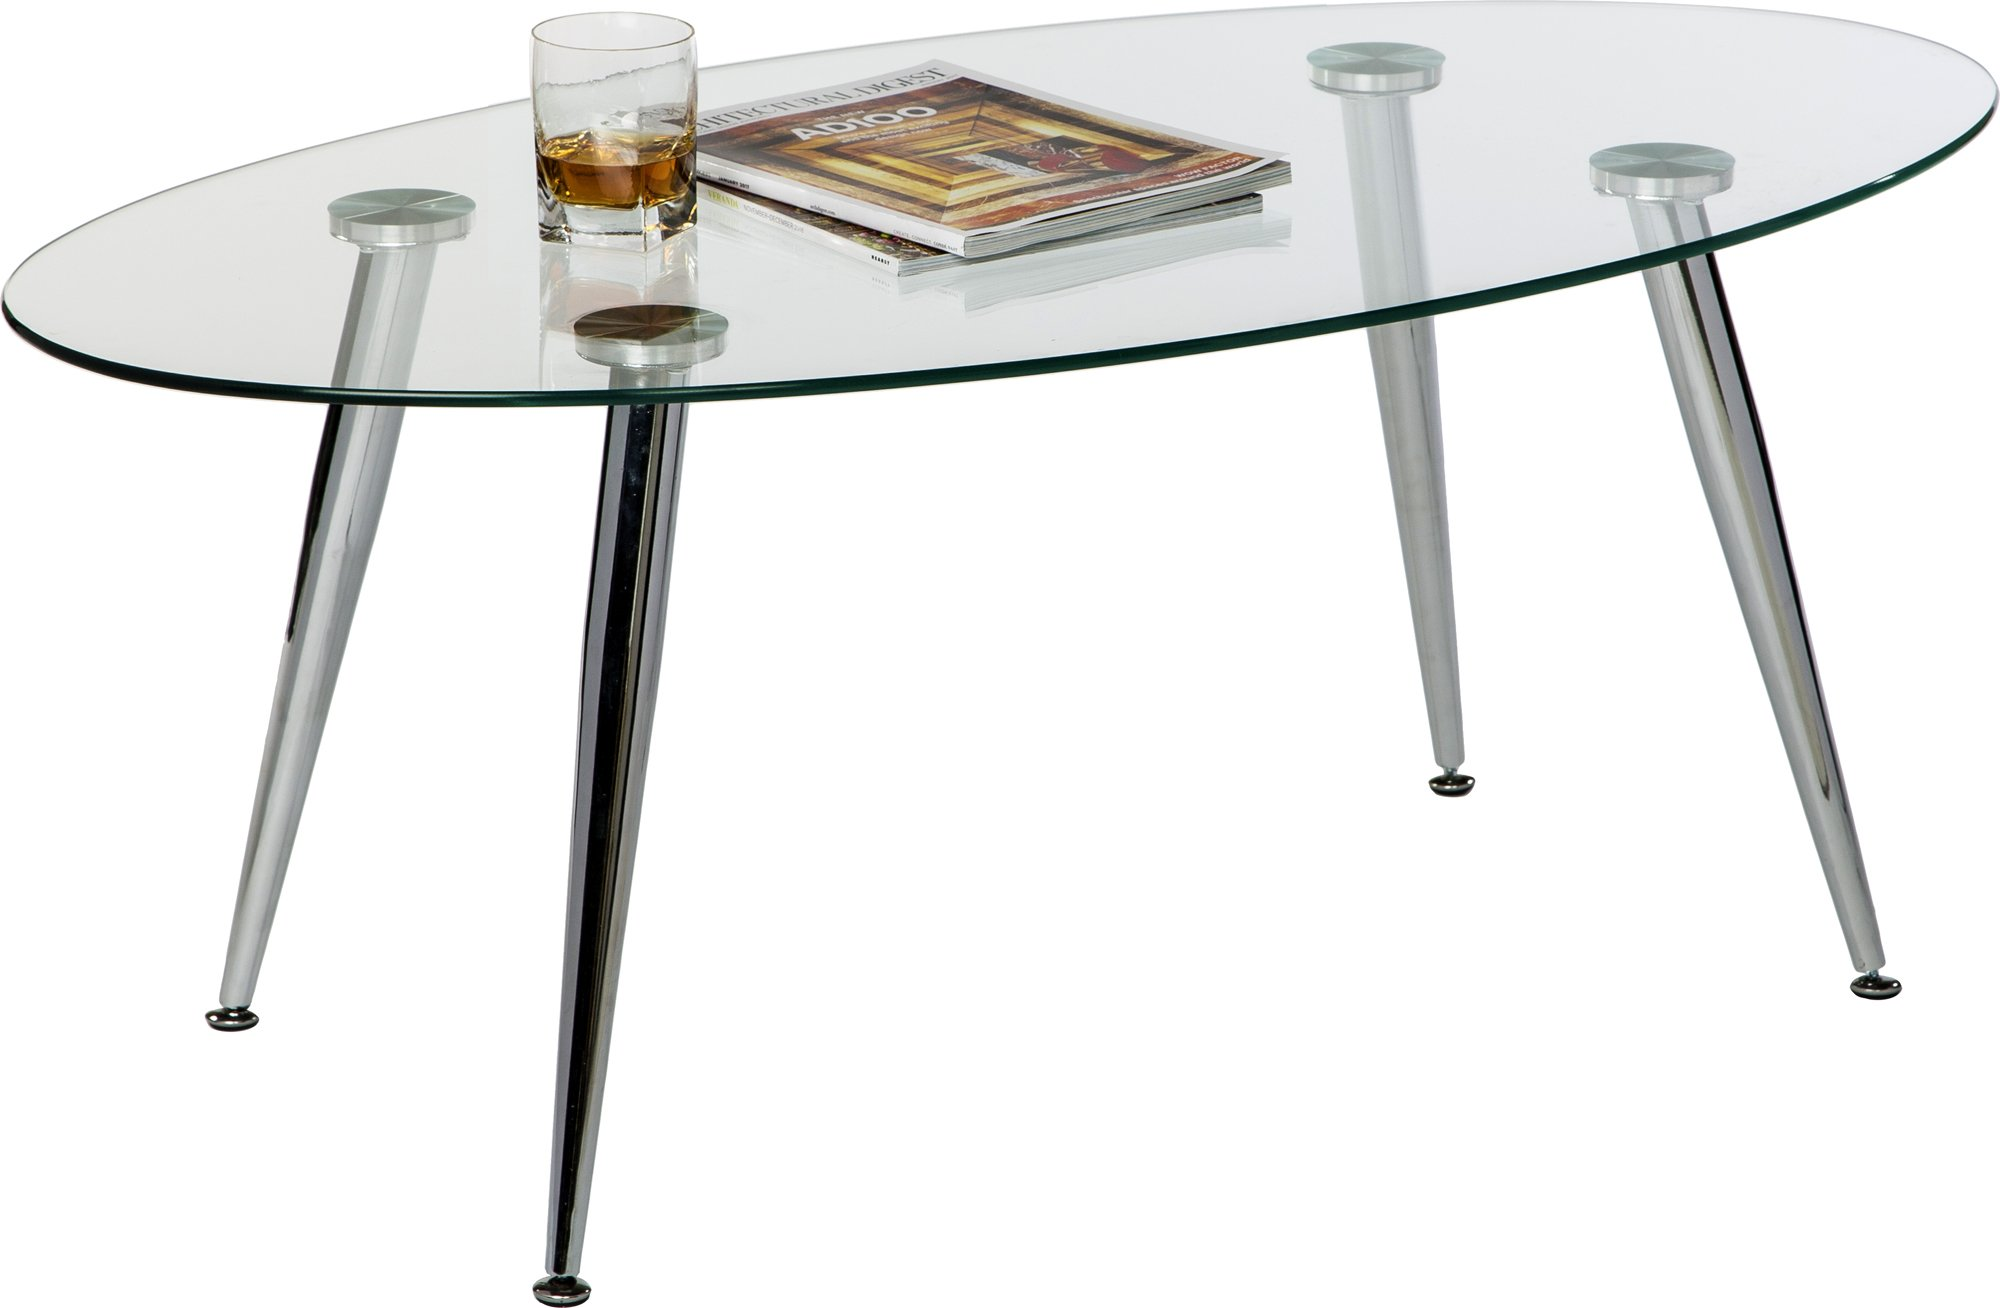 Mango Steam Pacifica Coffee Table - Oval - Clear Tempered Glass Top and Chrome Tube Base